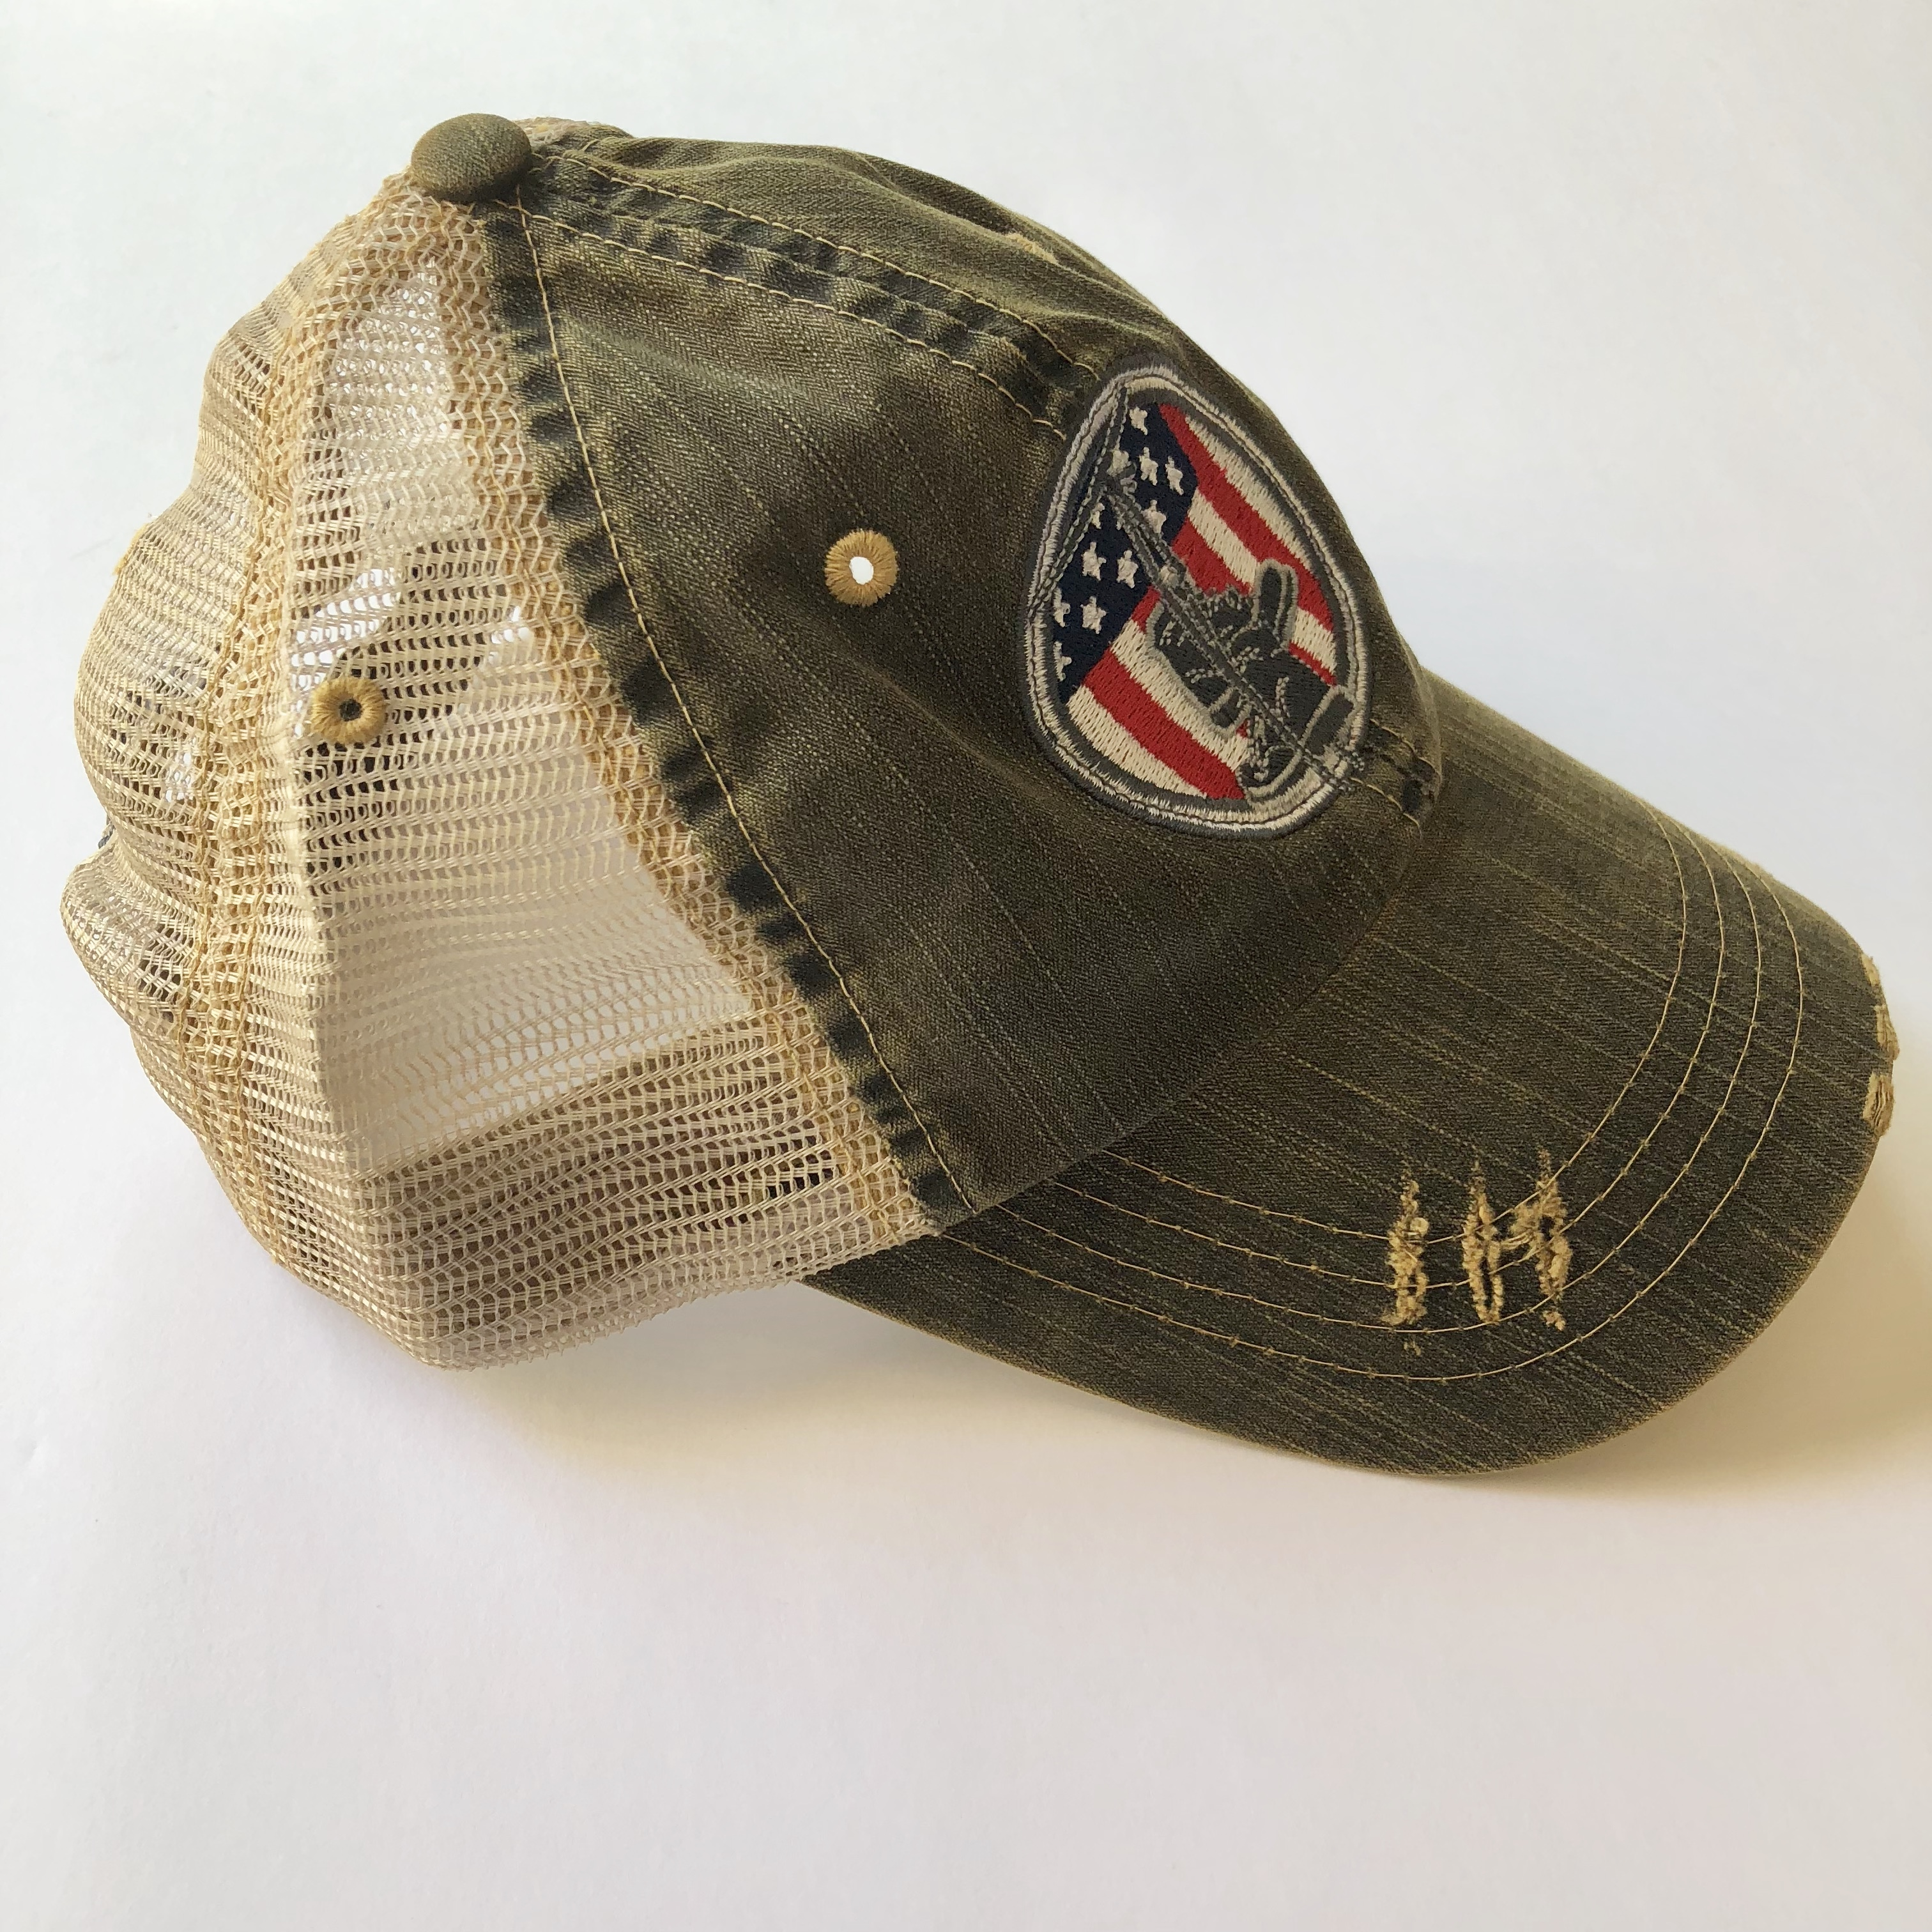 The Heroes Journey Ball Cap